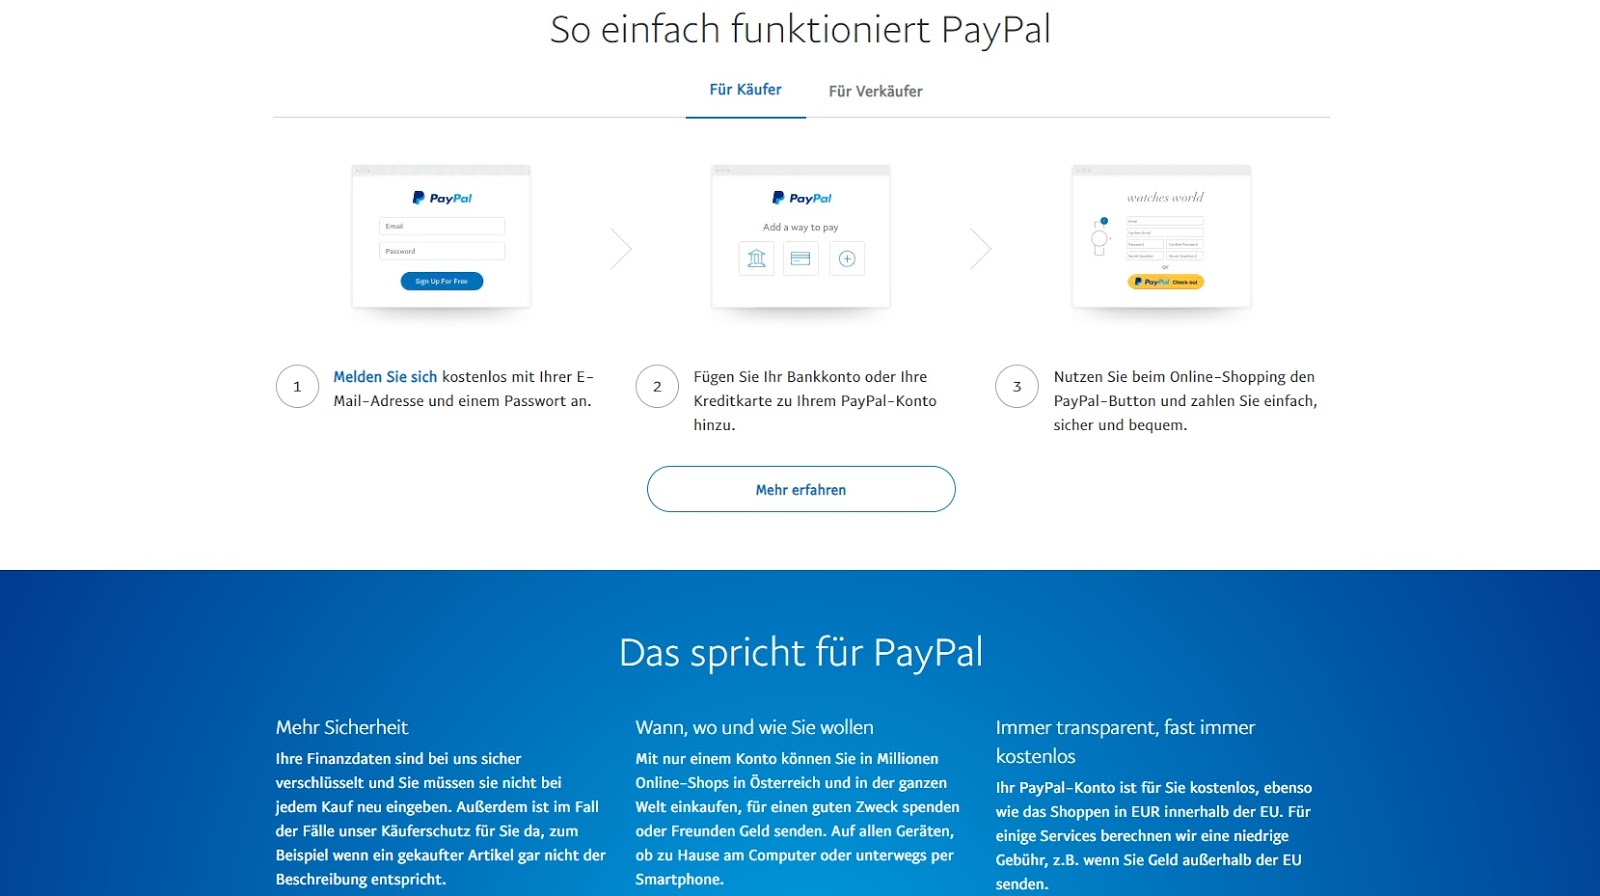 PayPal overview - how does it work